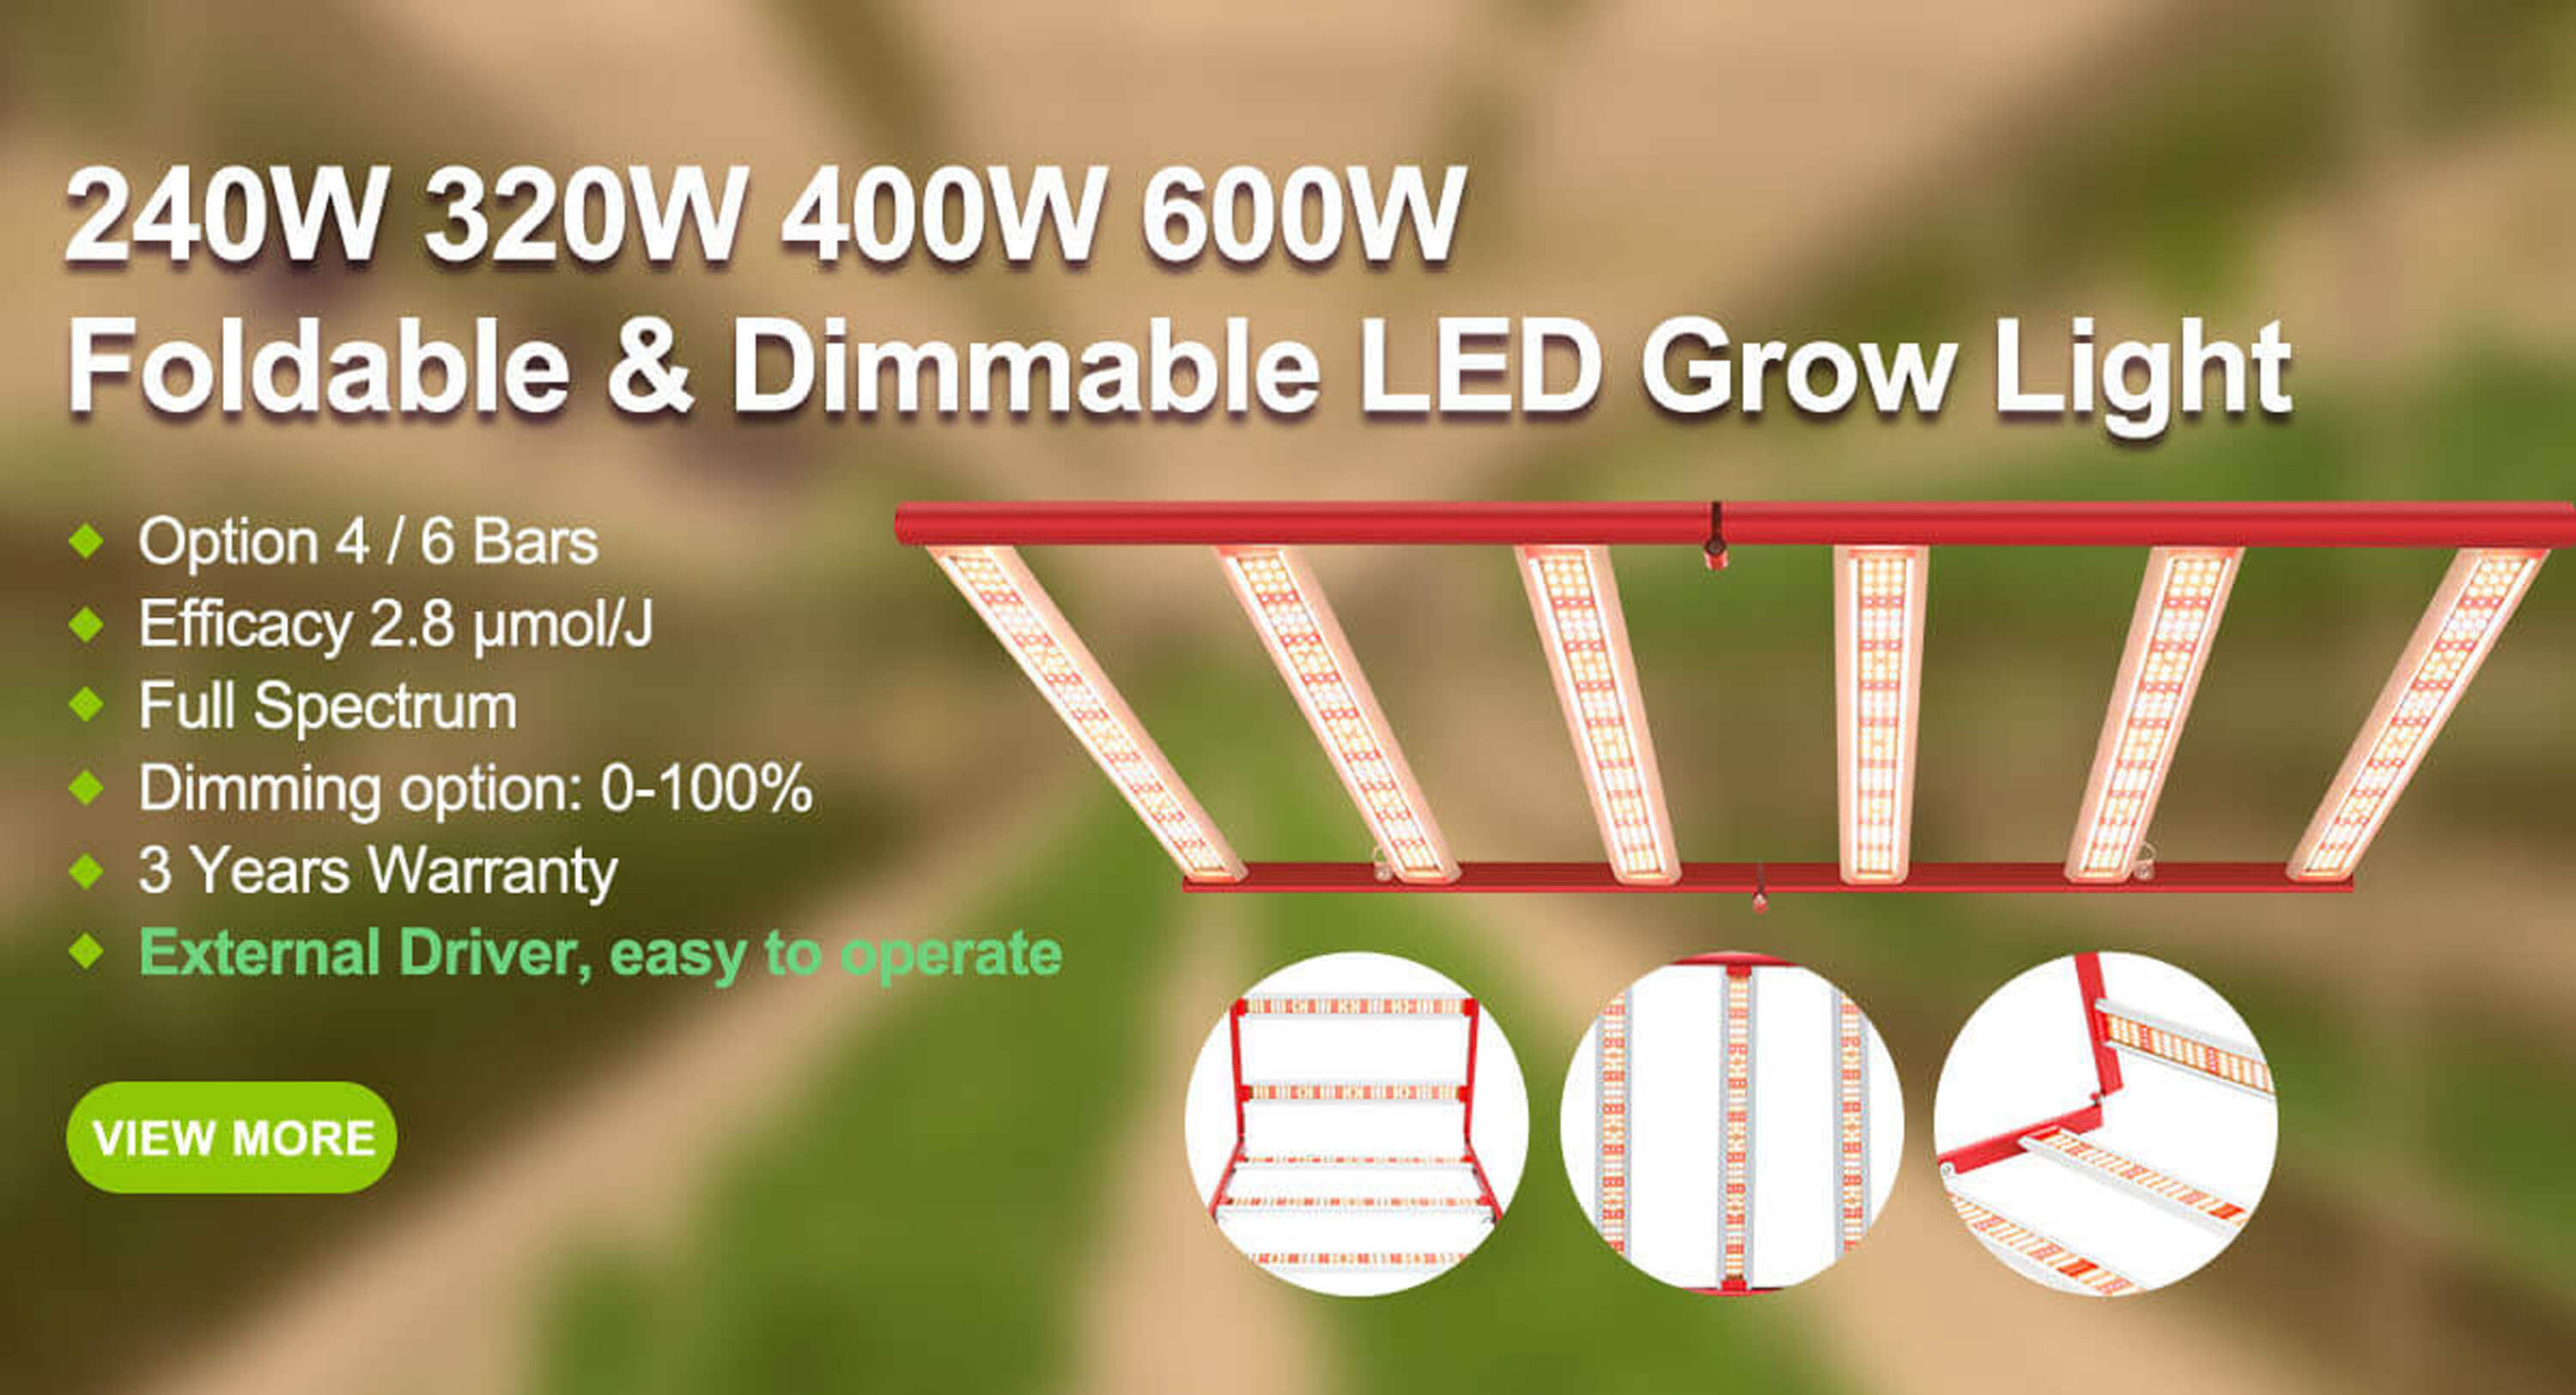 amazon m600w led grow lights